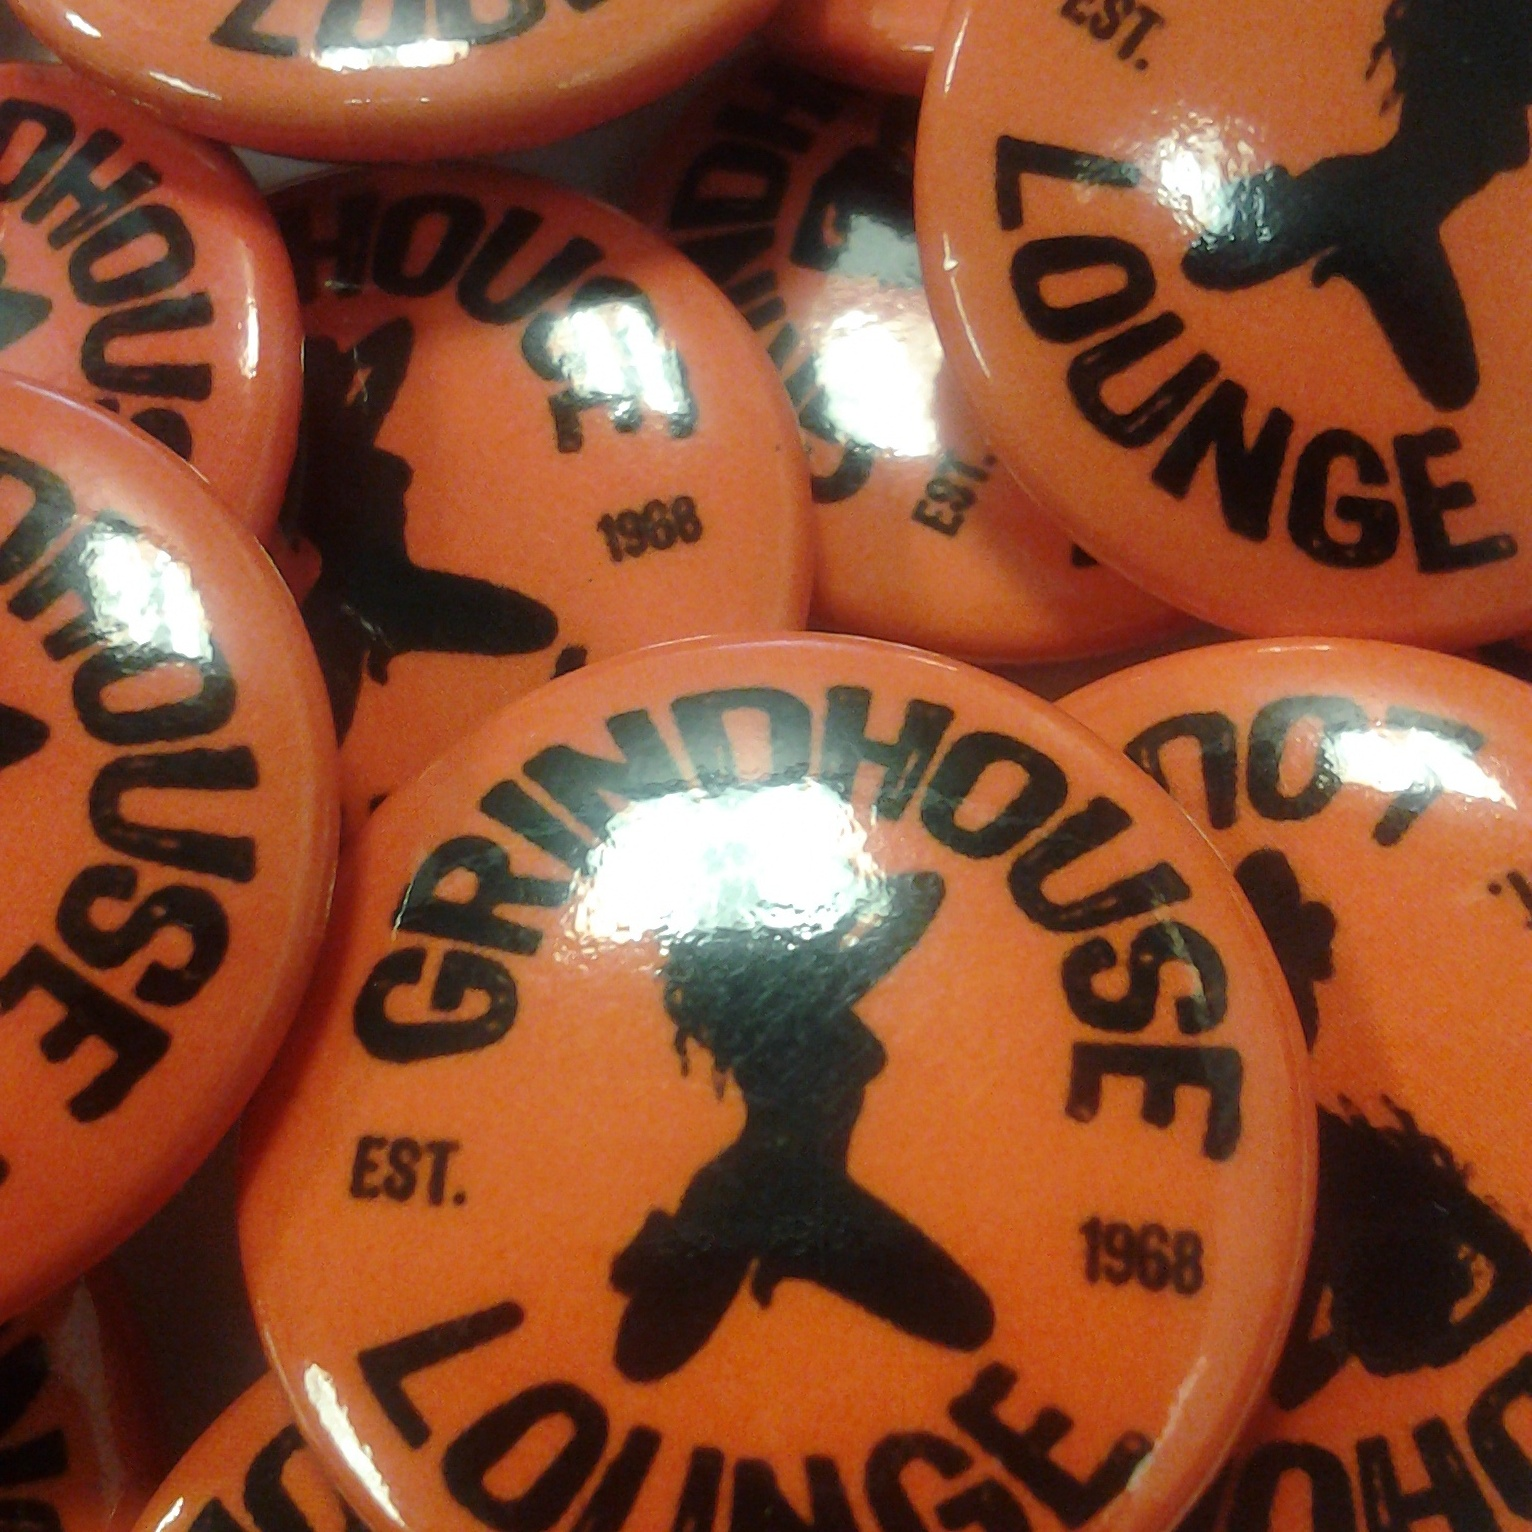 Grindhouse Lounge